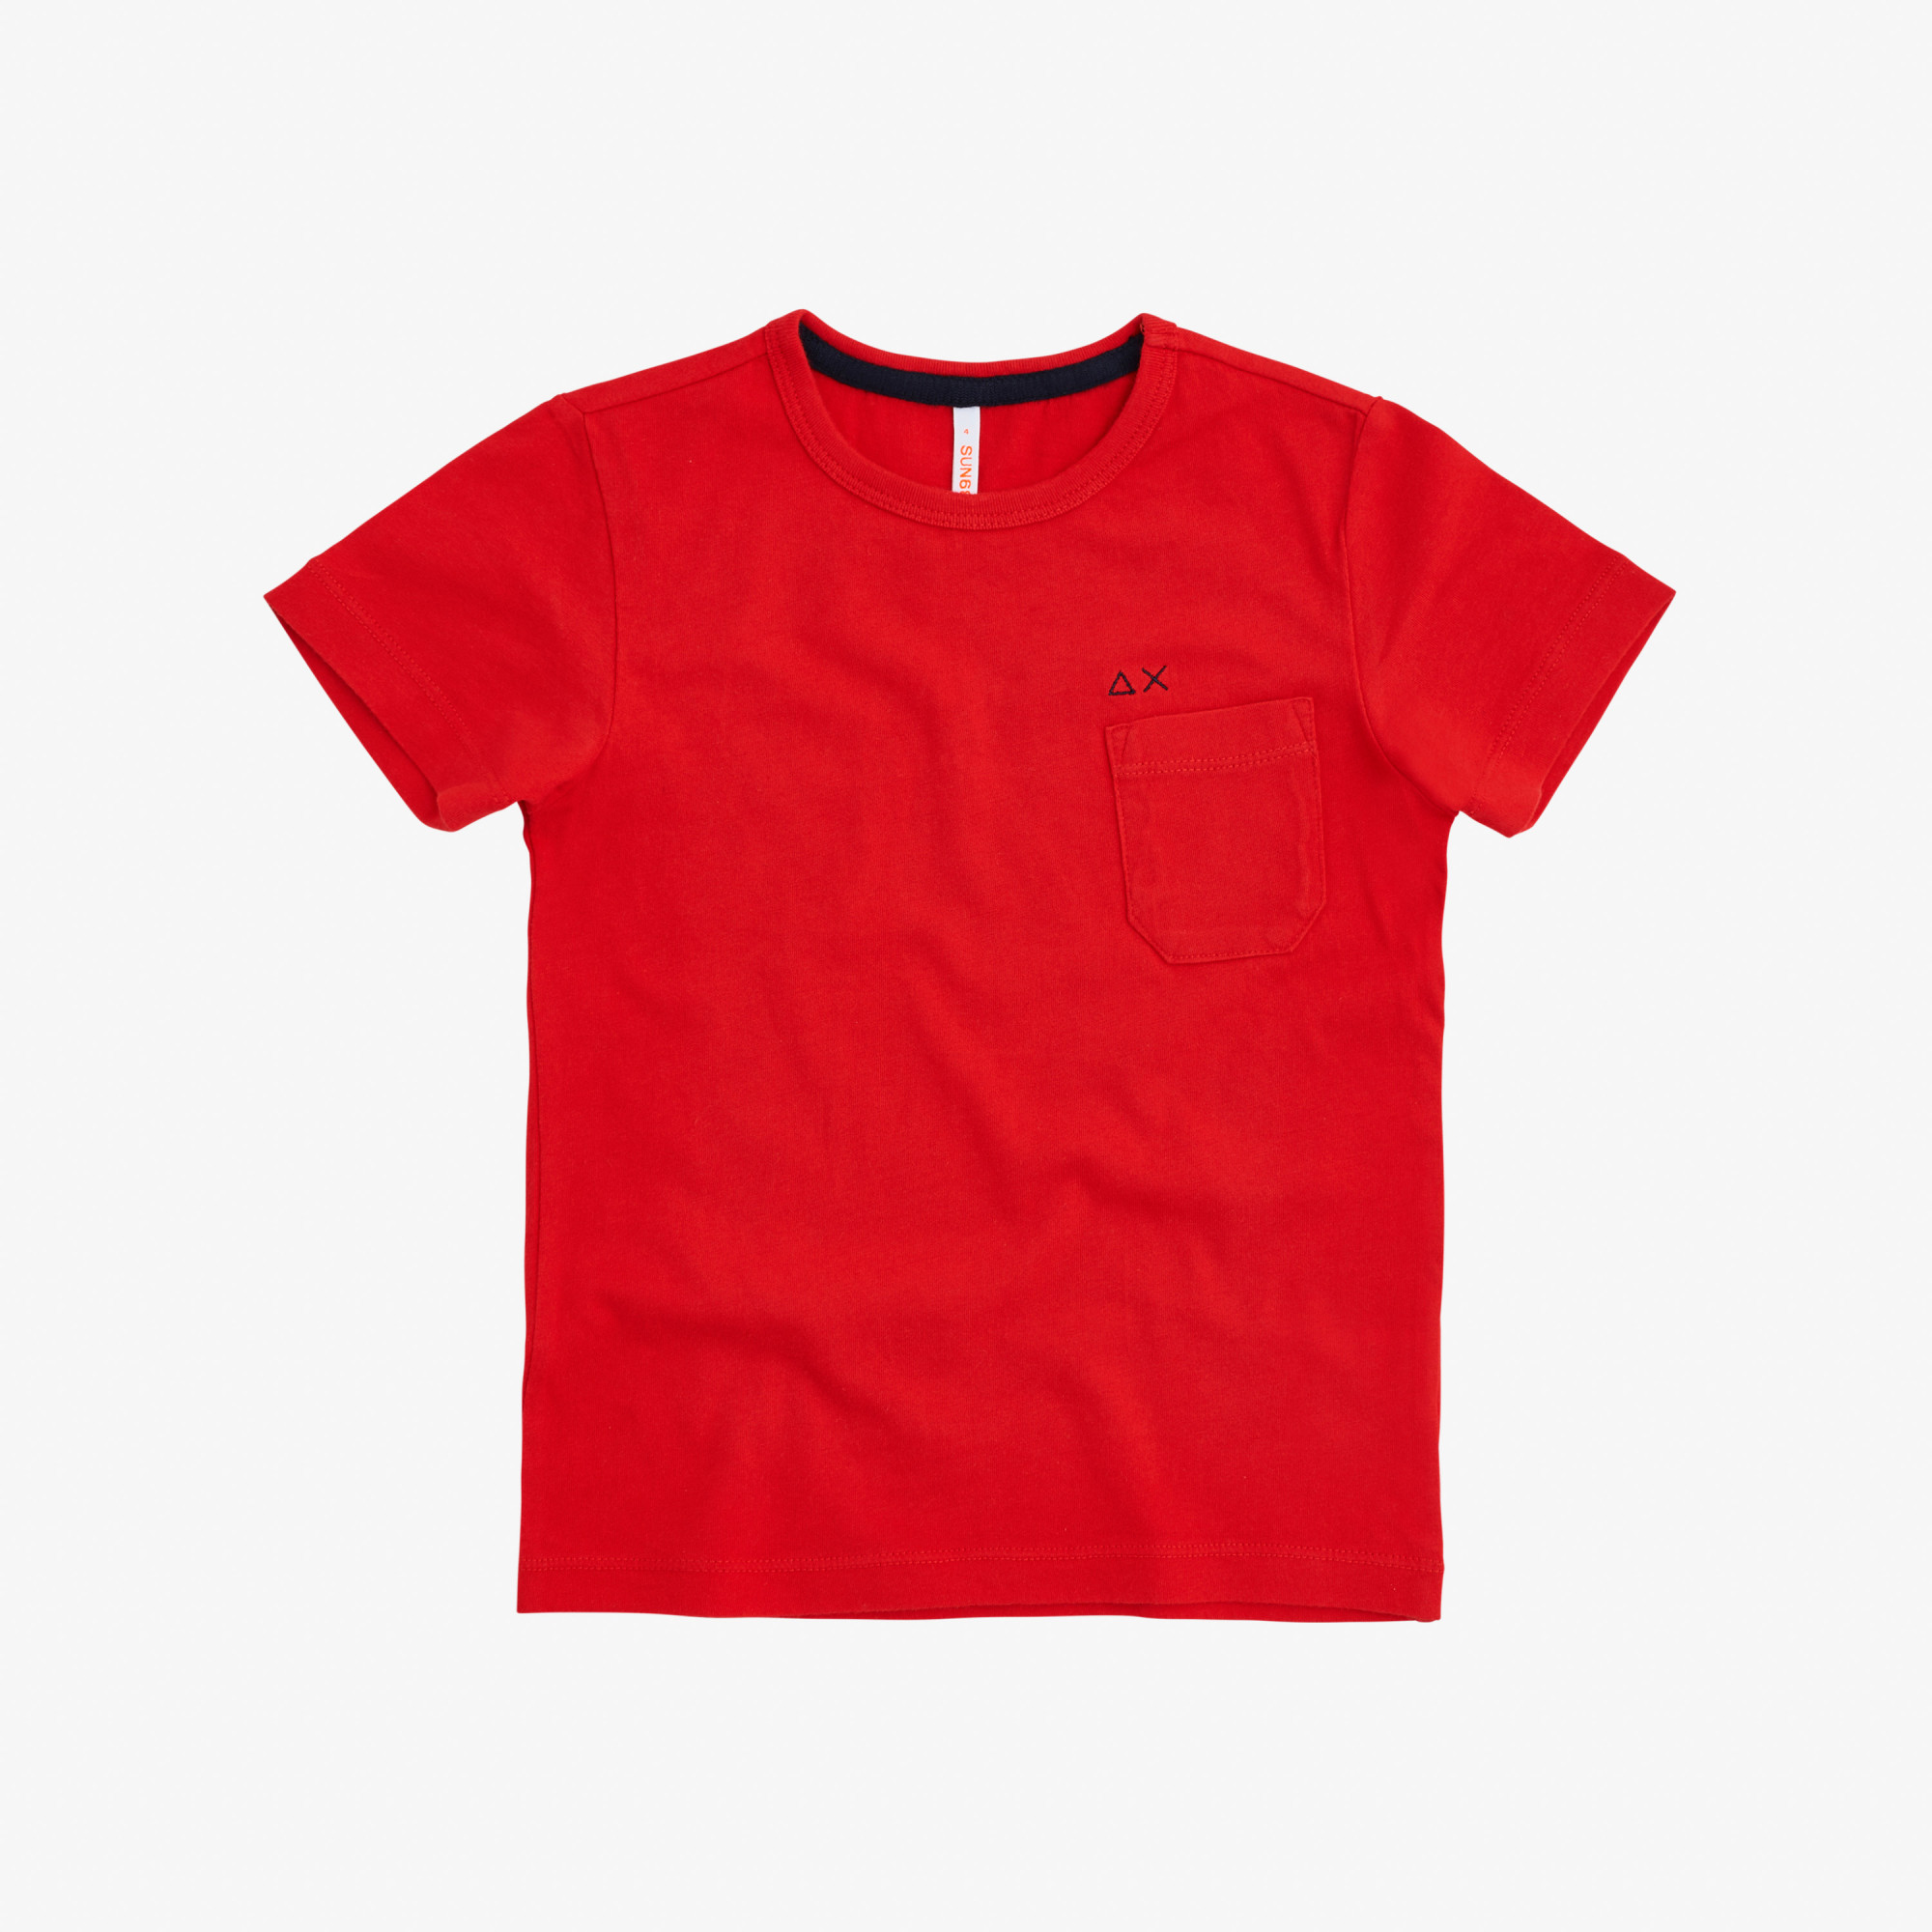 BOY'S T-SHIRT ROUND SOLID POCKET ROSSO FUOCO